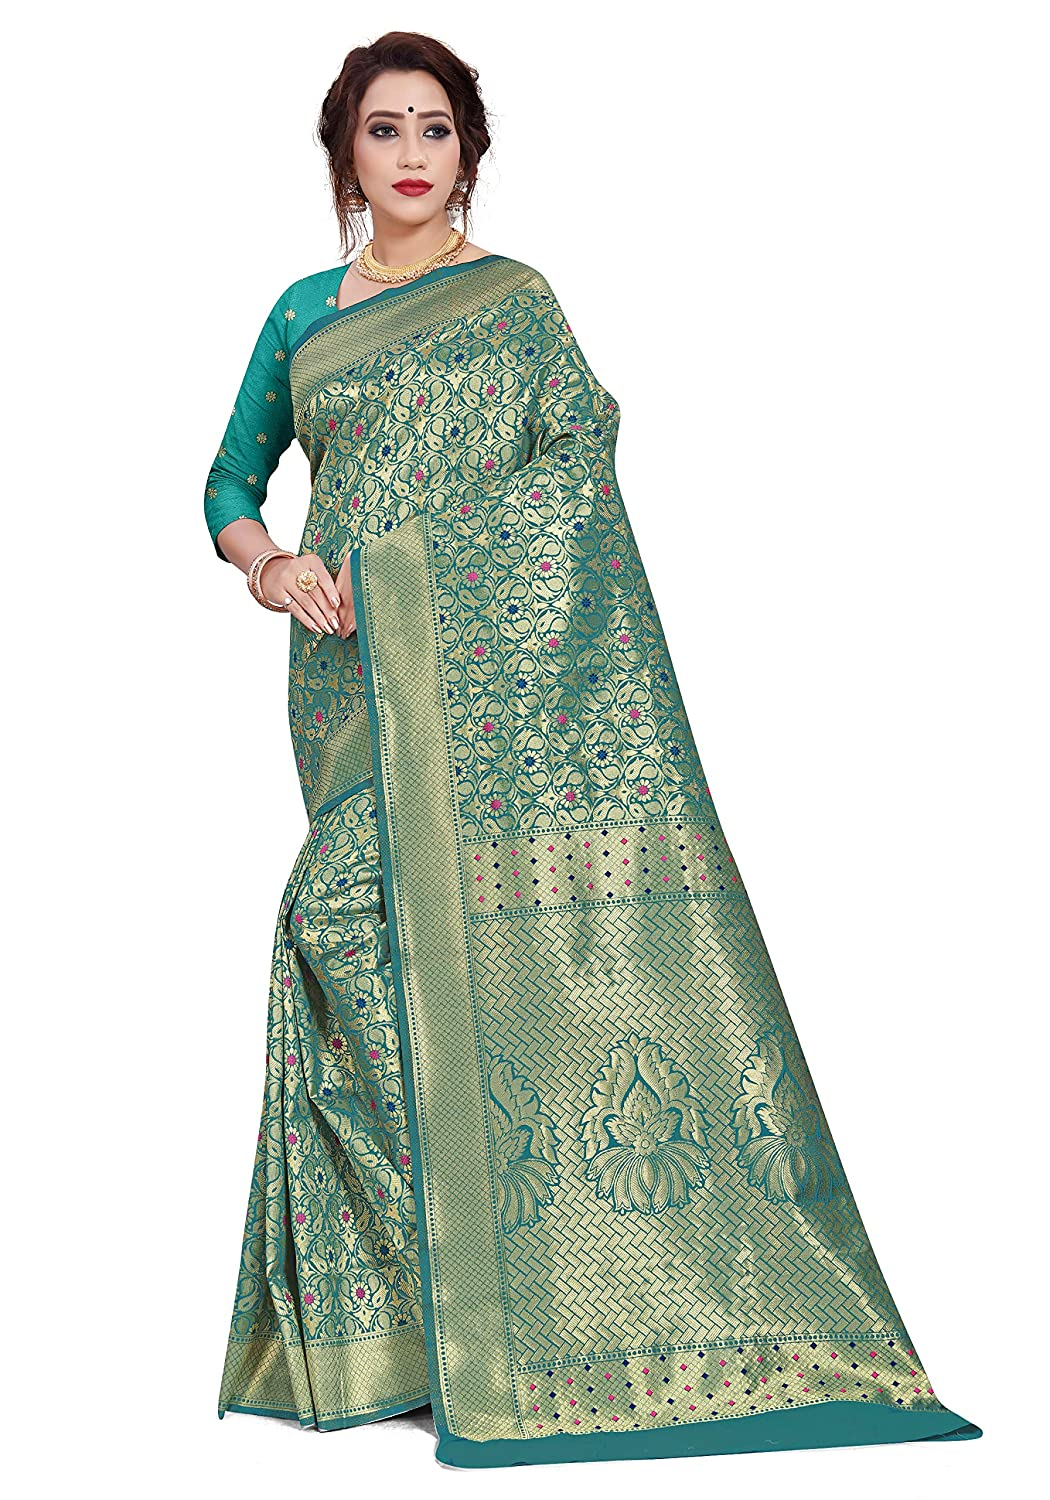 Mirraw Classiques Green Woven Art Silk Saree with Unstitched Blouse